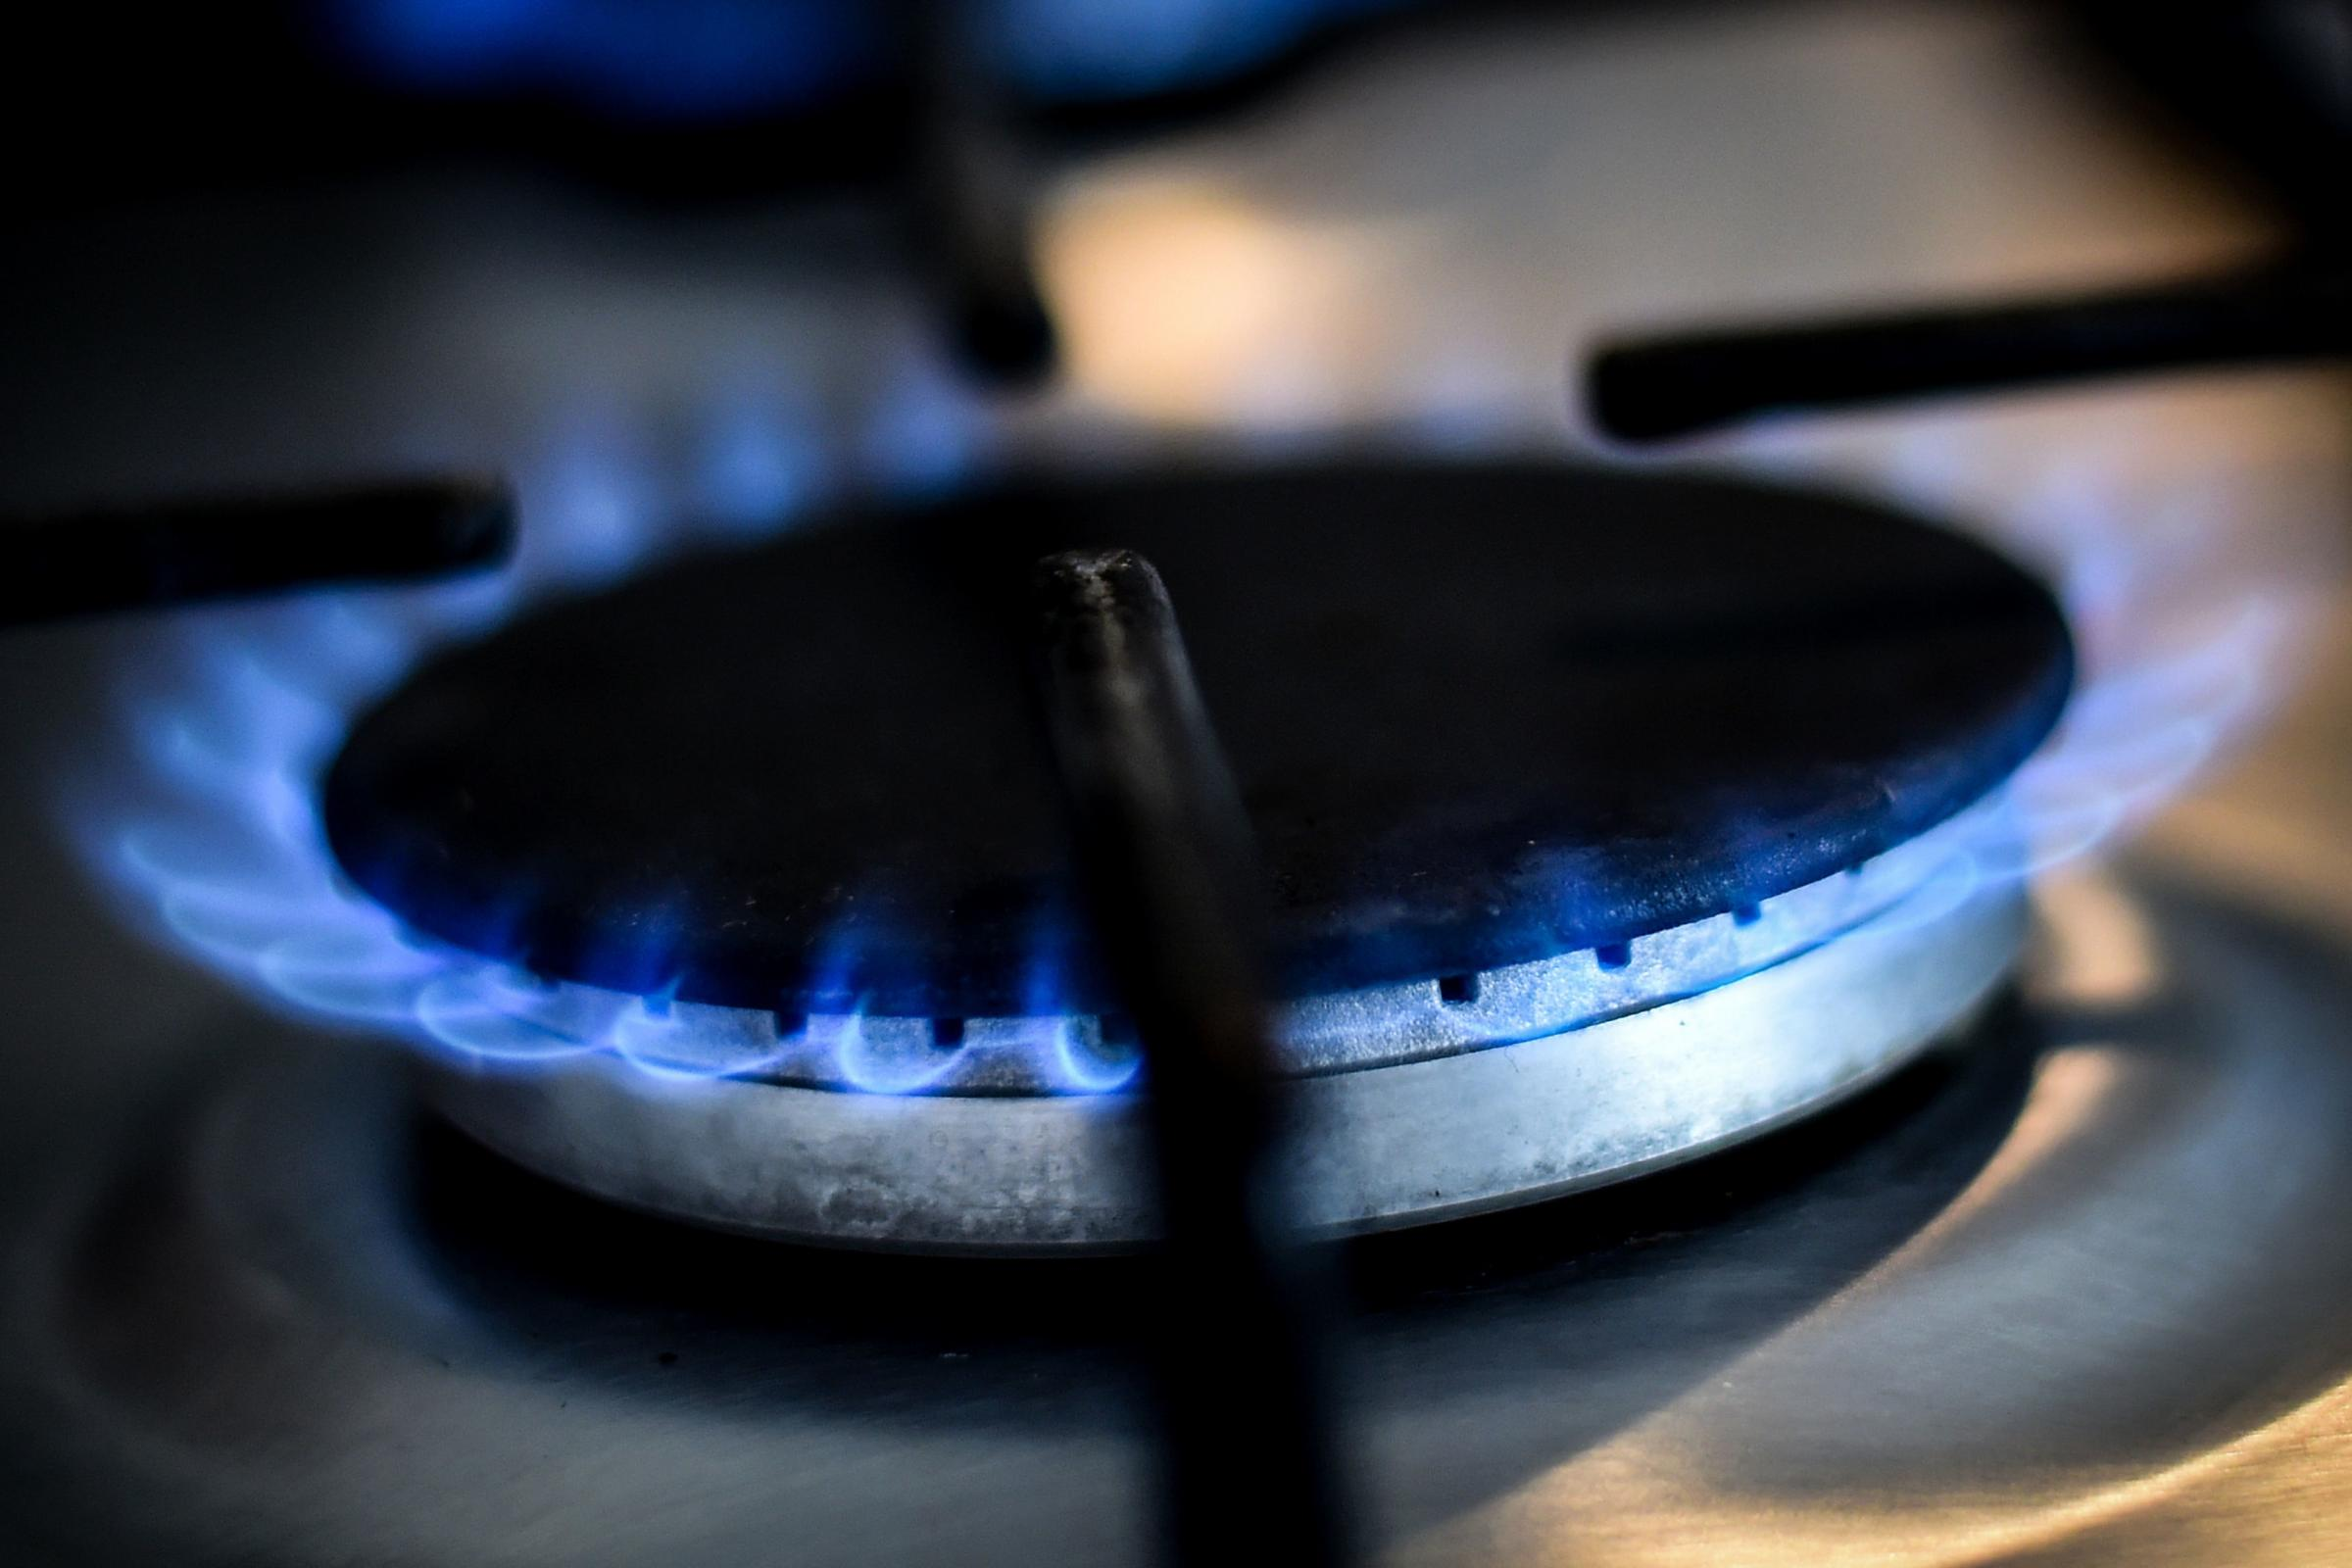 A gas ring on a cooker